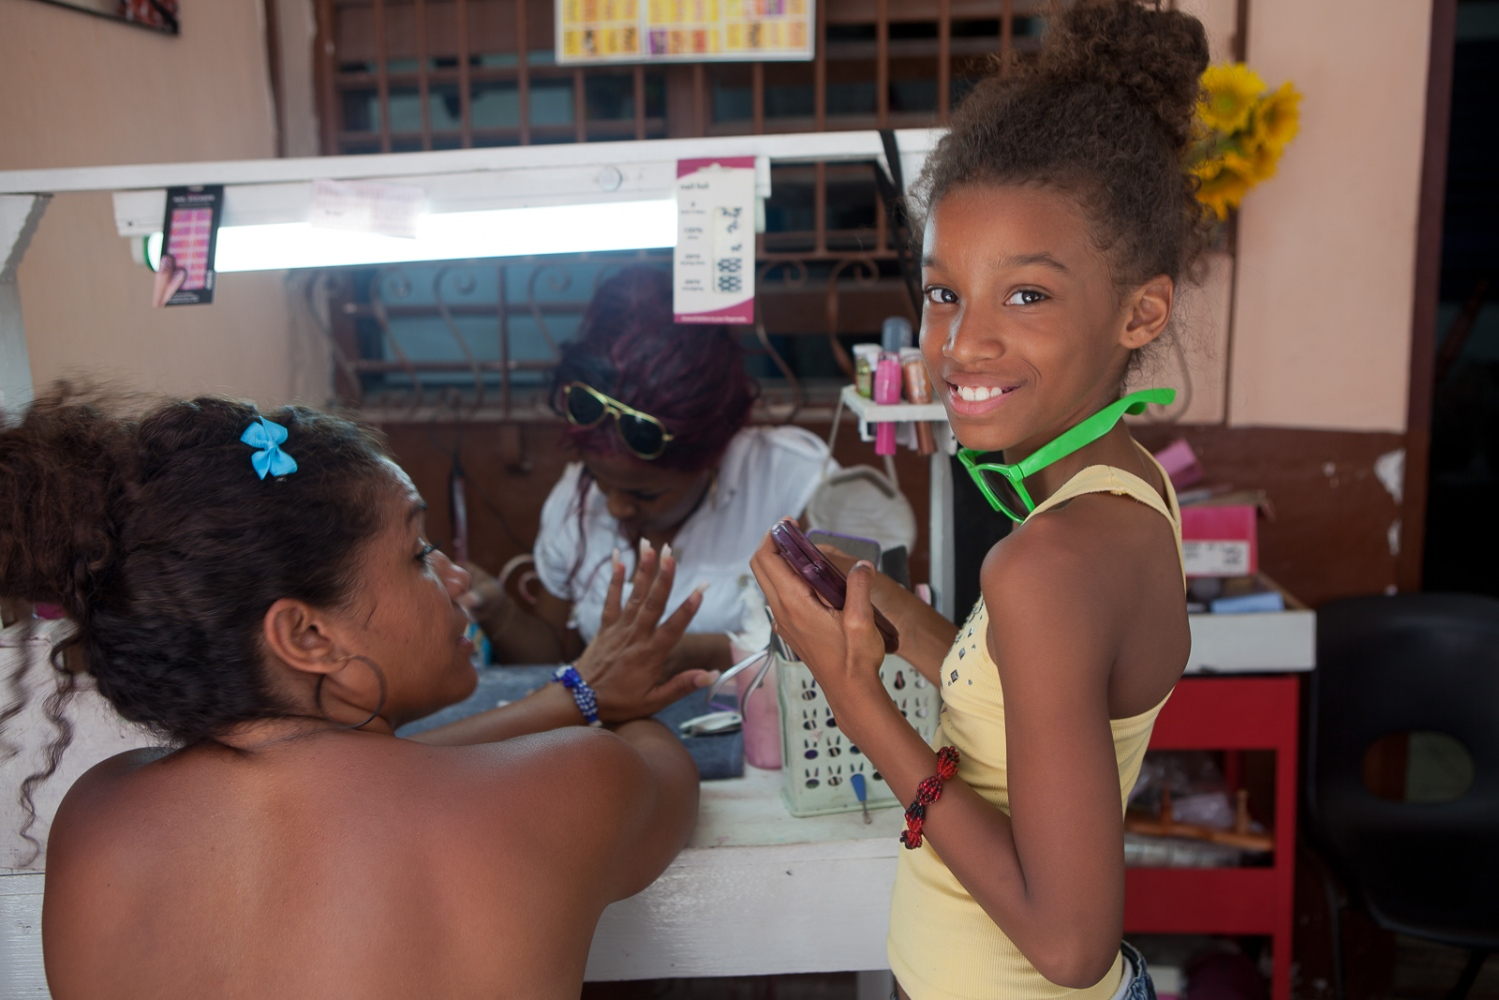 Mother and daughter at a street-side nail salon in Havana. Small, regulated private businesses had started to appear with a slight loosening of central planning when I visited in 2013.